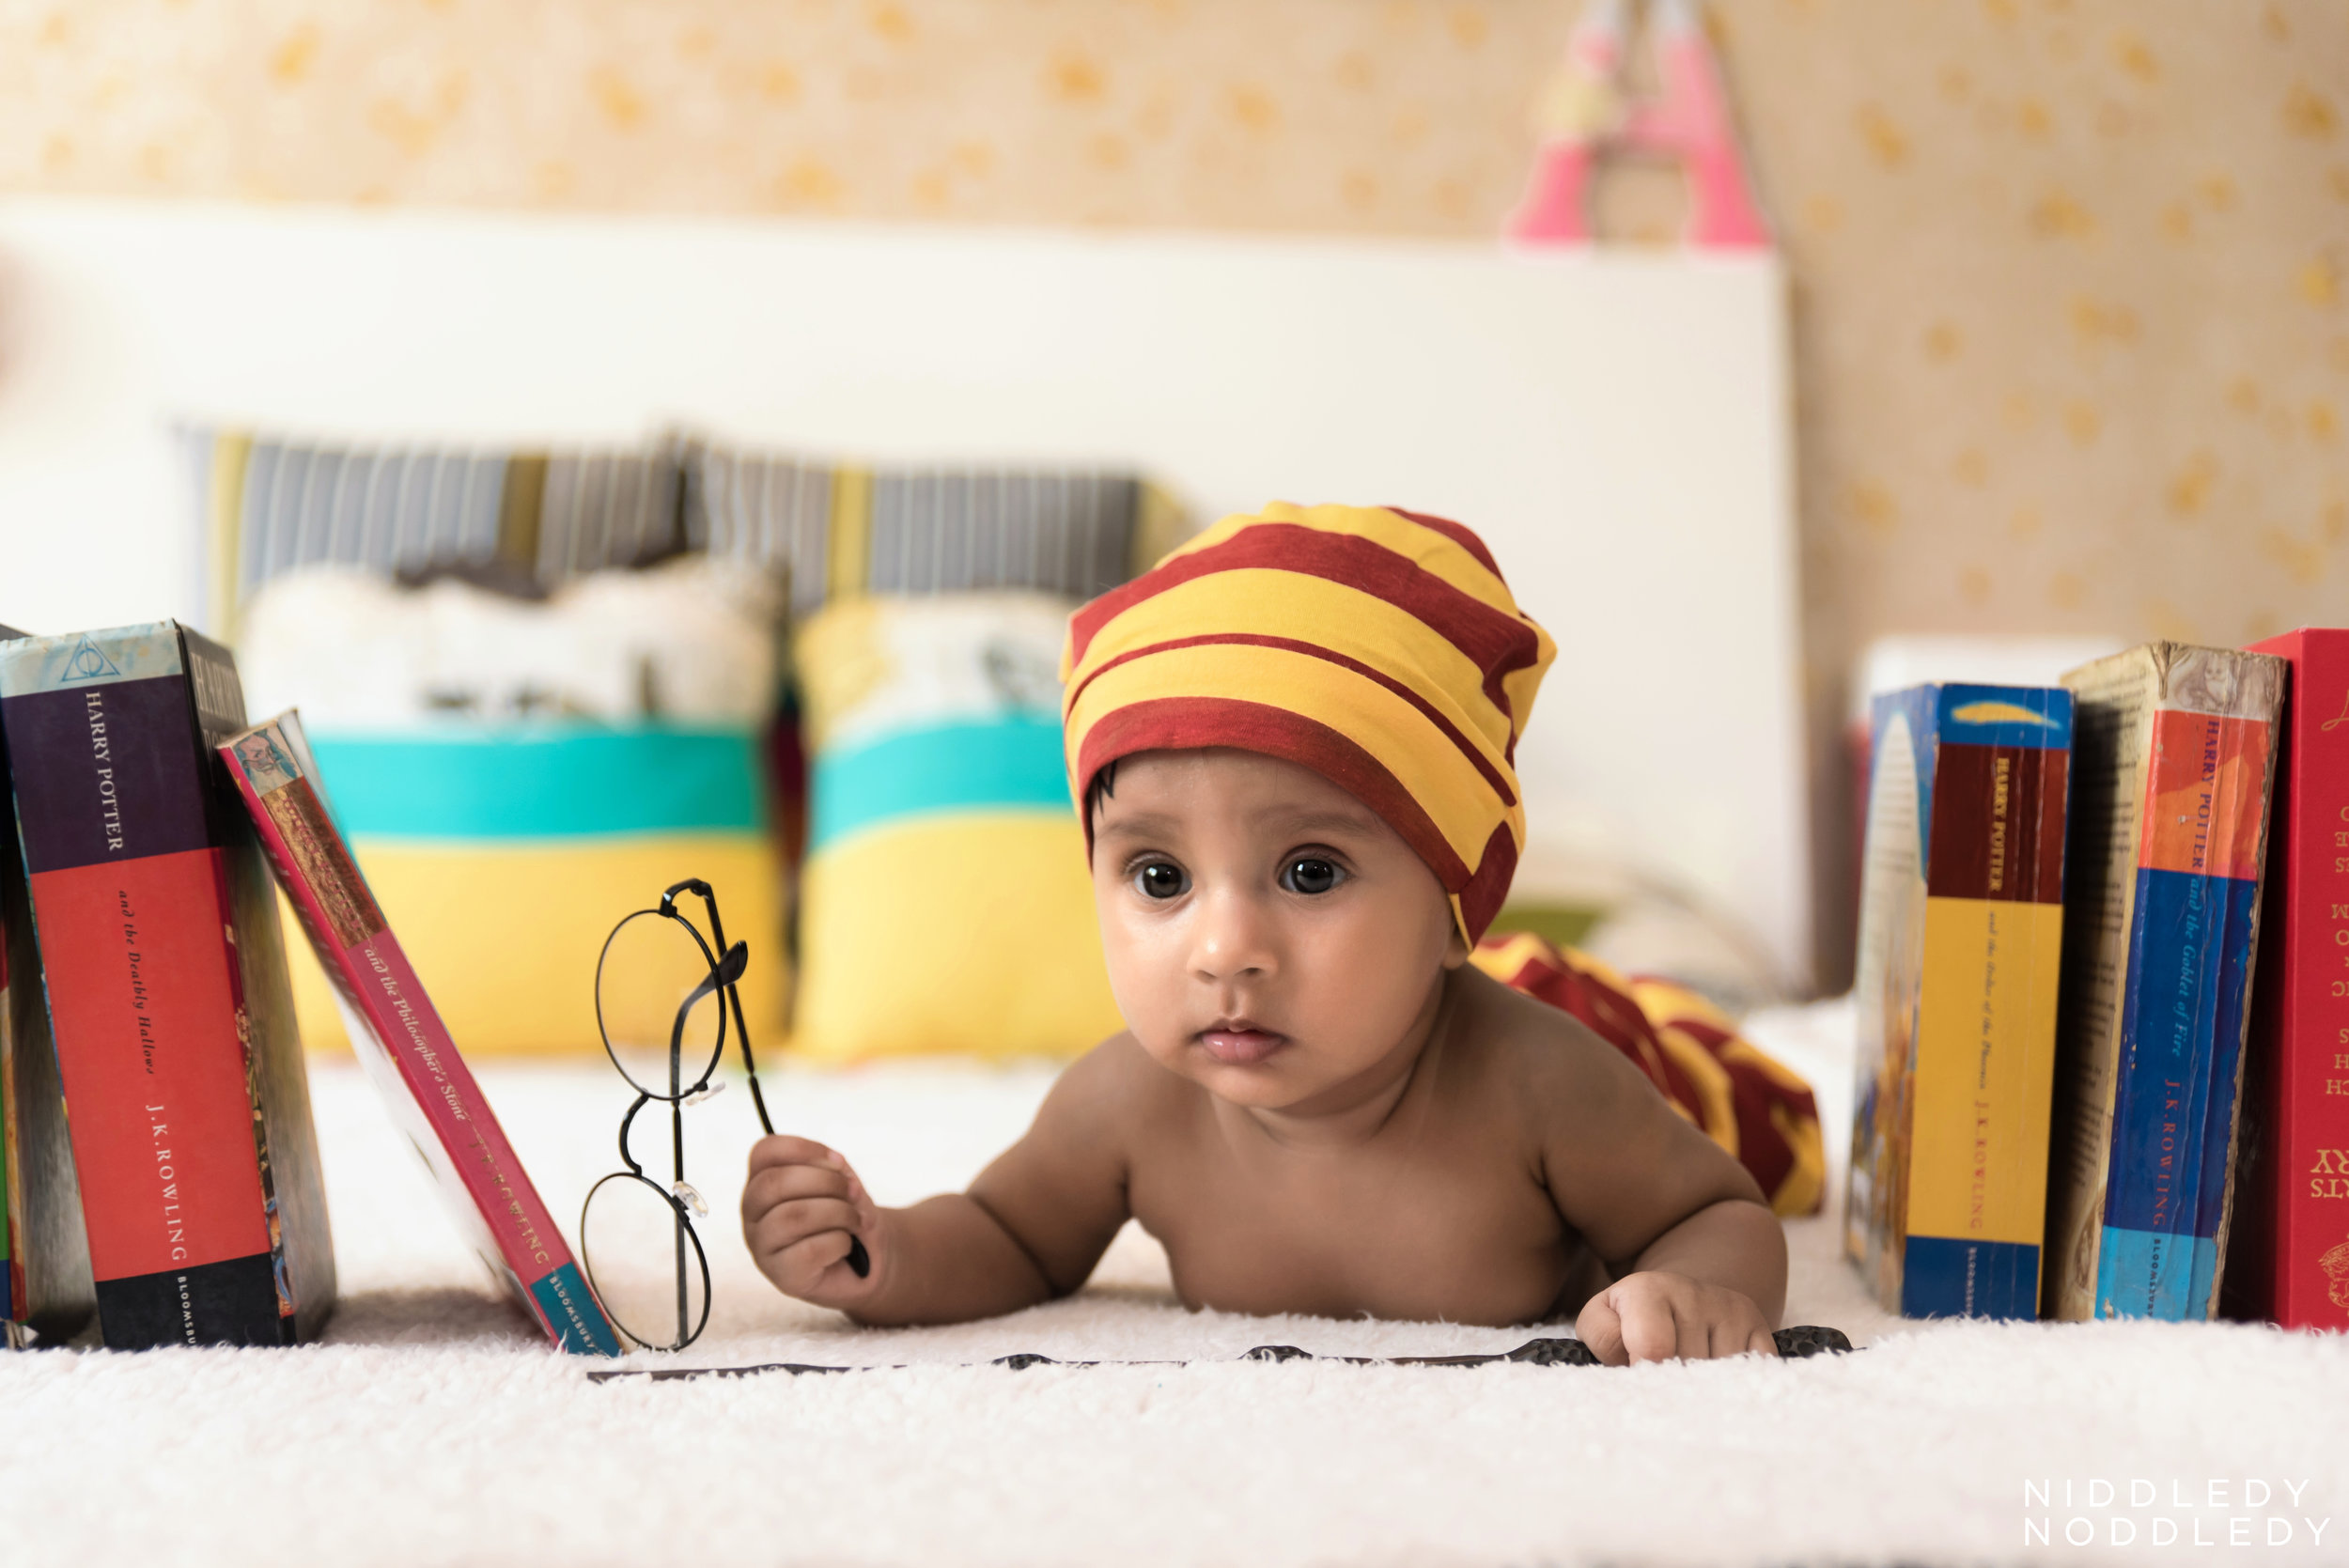 Anaisha Baby Photoshoot ❤ NiddledyNoddledy.com ~ Bumps to Babies Photography, Kolkata - 44.jpg